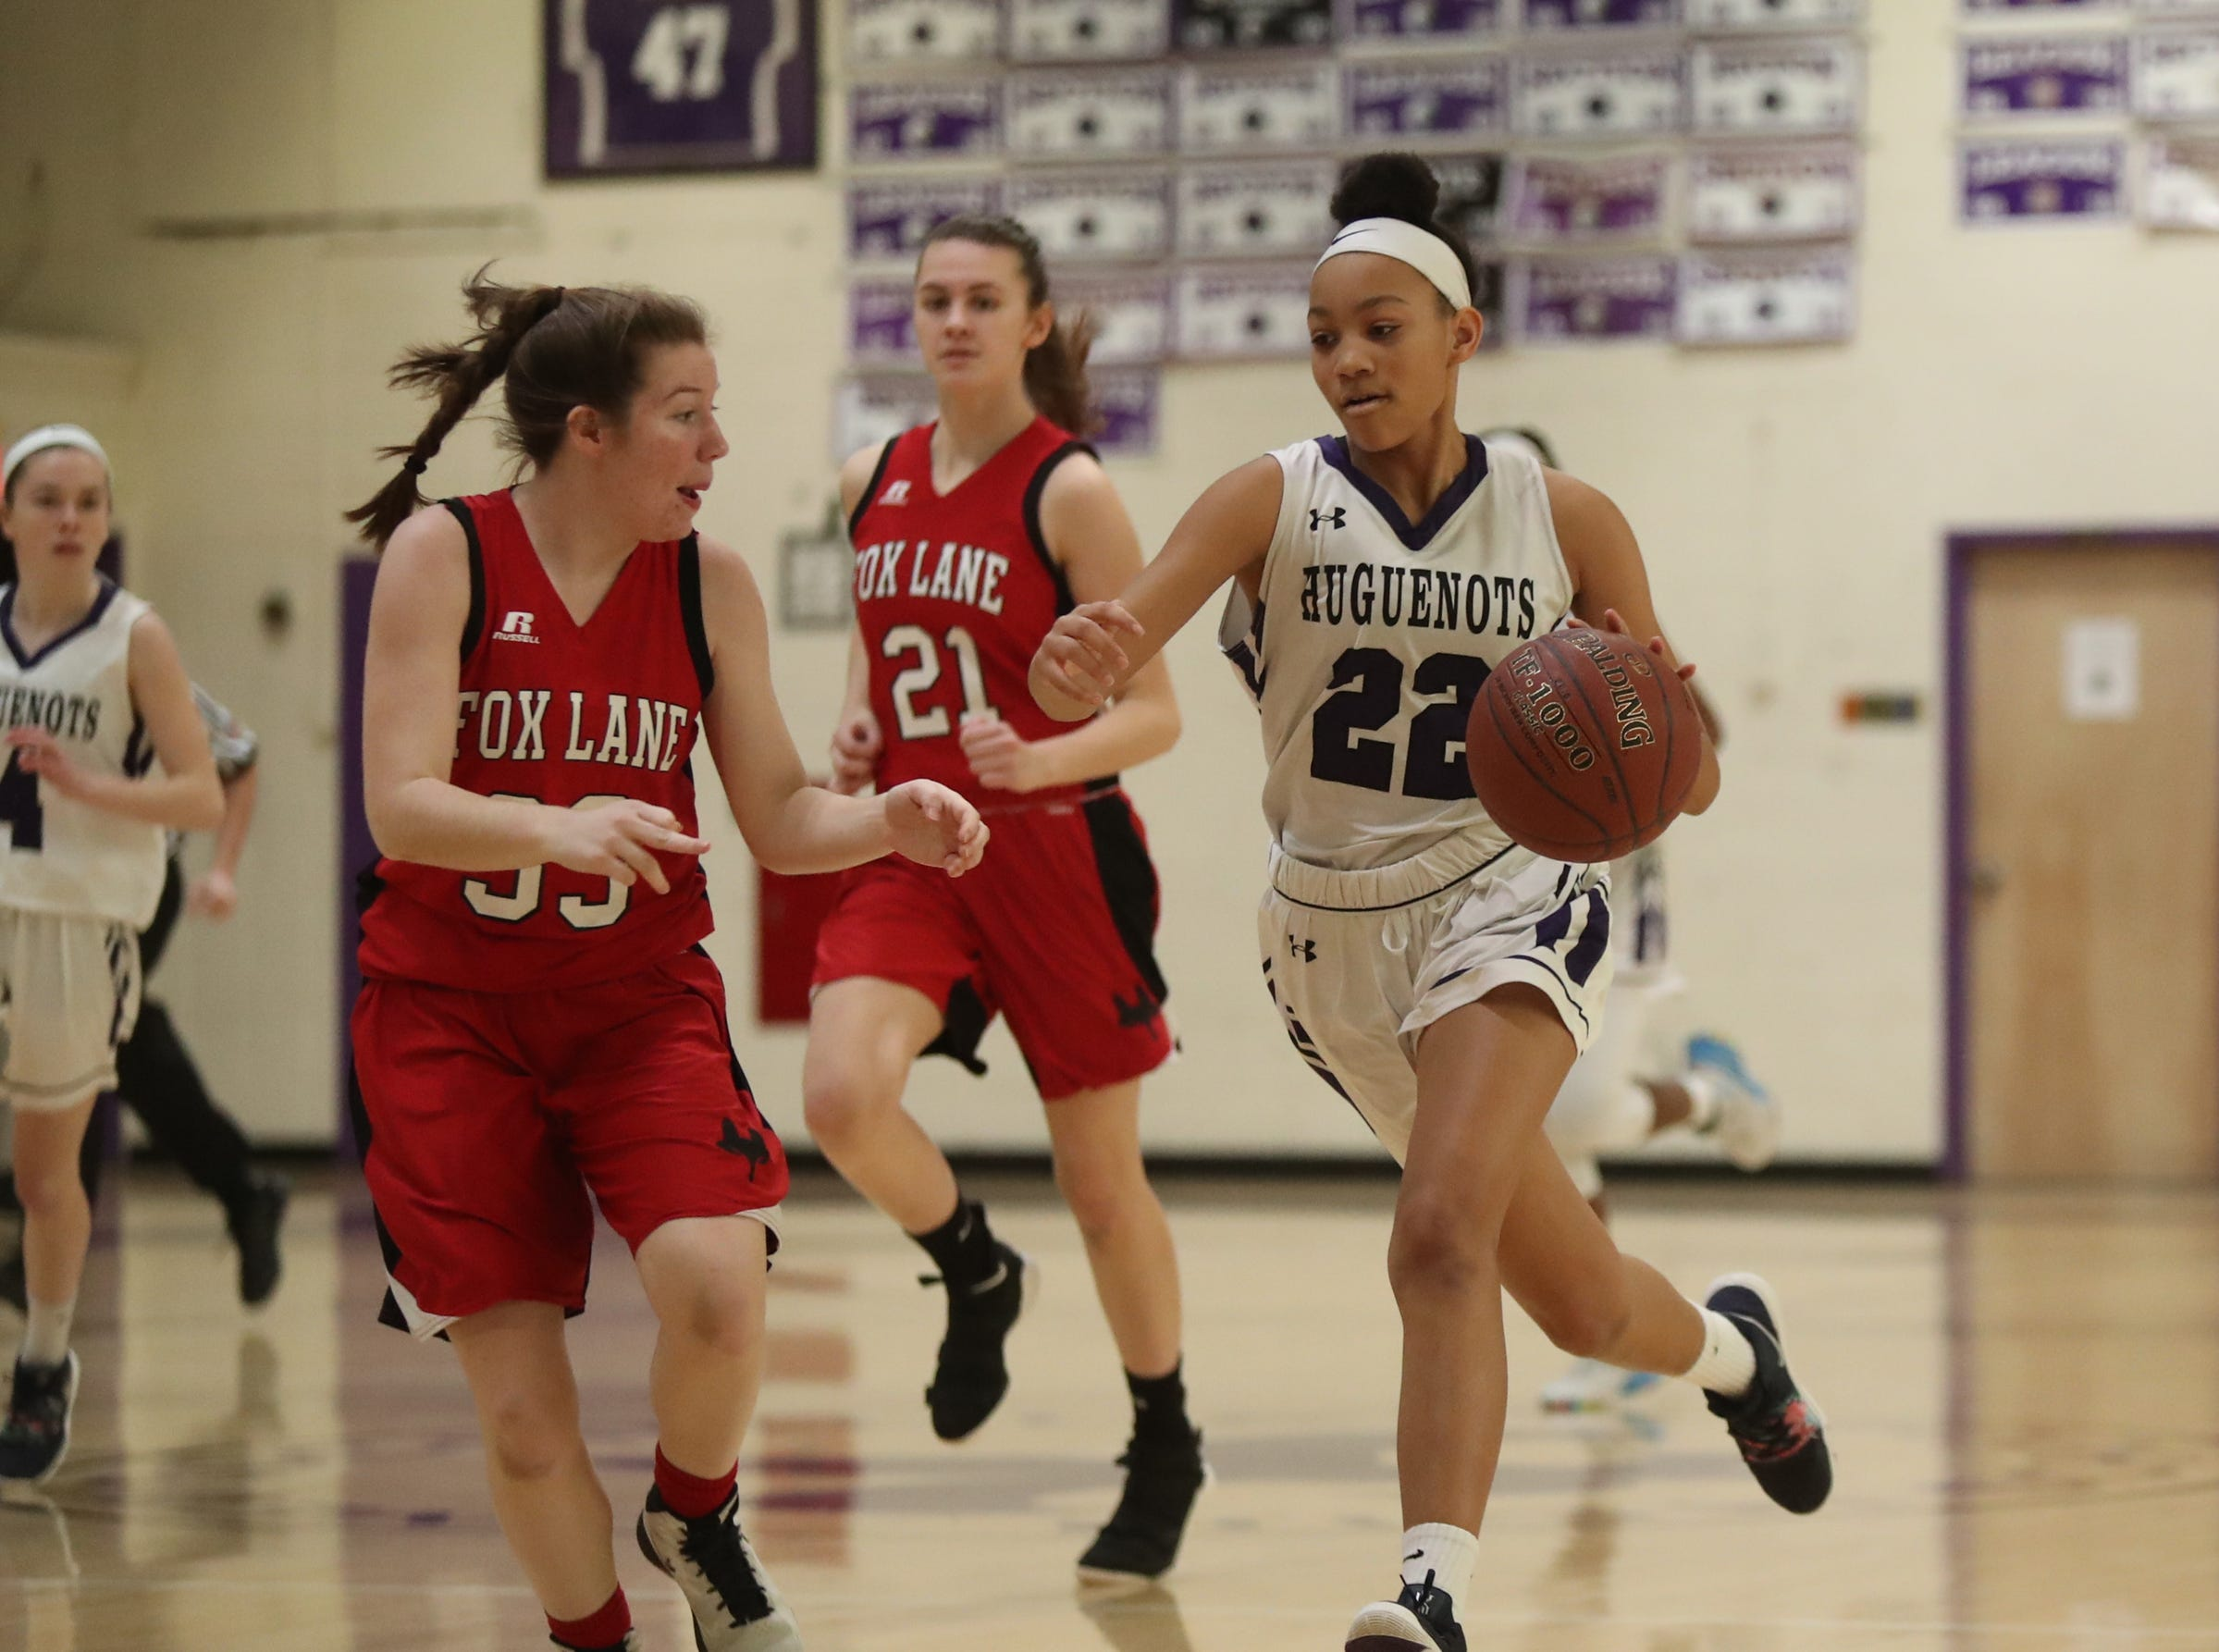 Fox Lane's Suzy Paul (33) defends New Rochelle's Kamara St. Paul (22) as she dribbles up court in the class AA girls basketball outbracket game at New Rochelle High School in New Rochelle on Saturday, February 16, 2019.